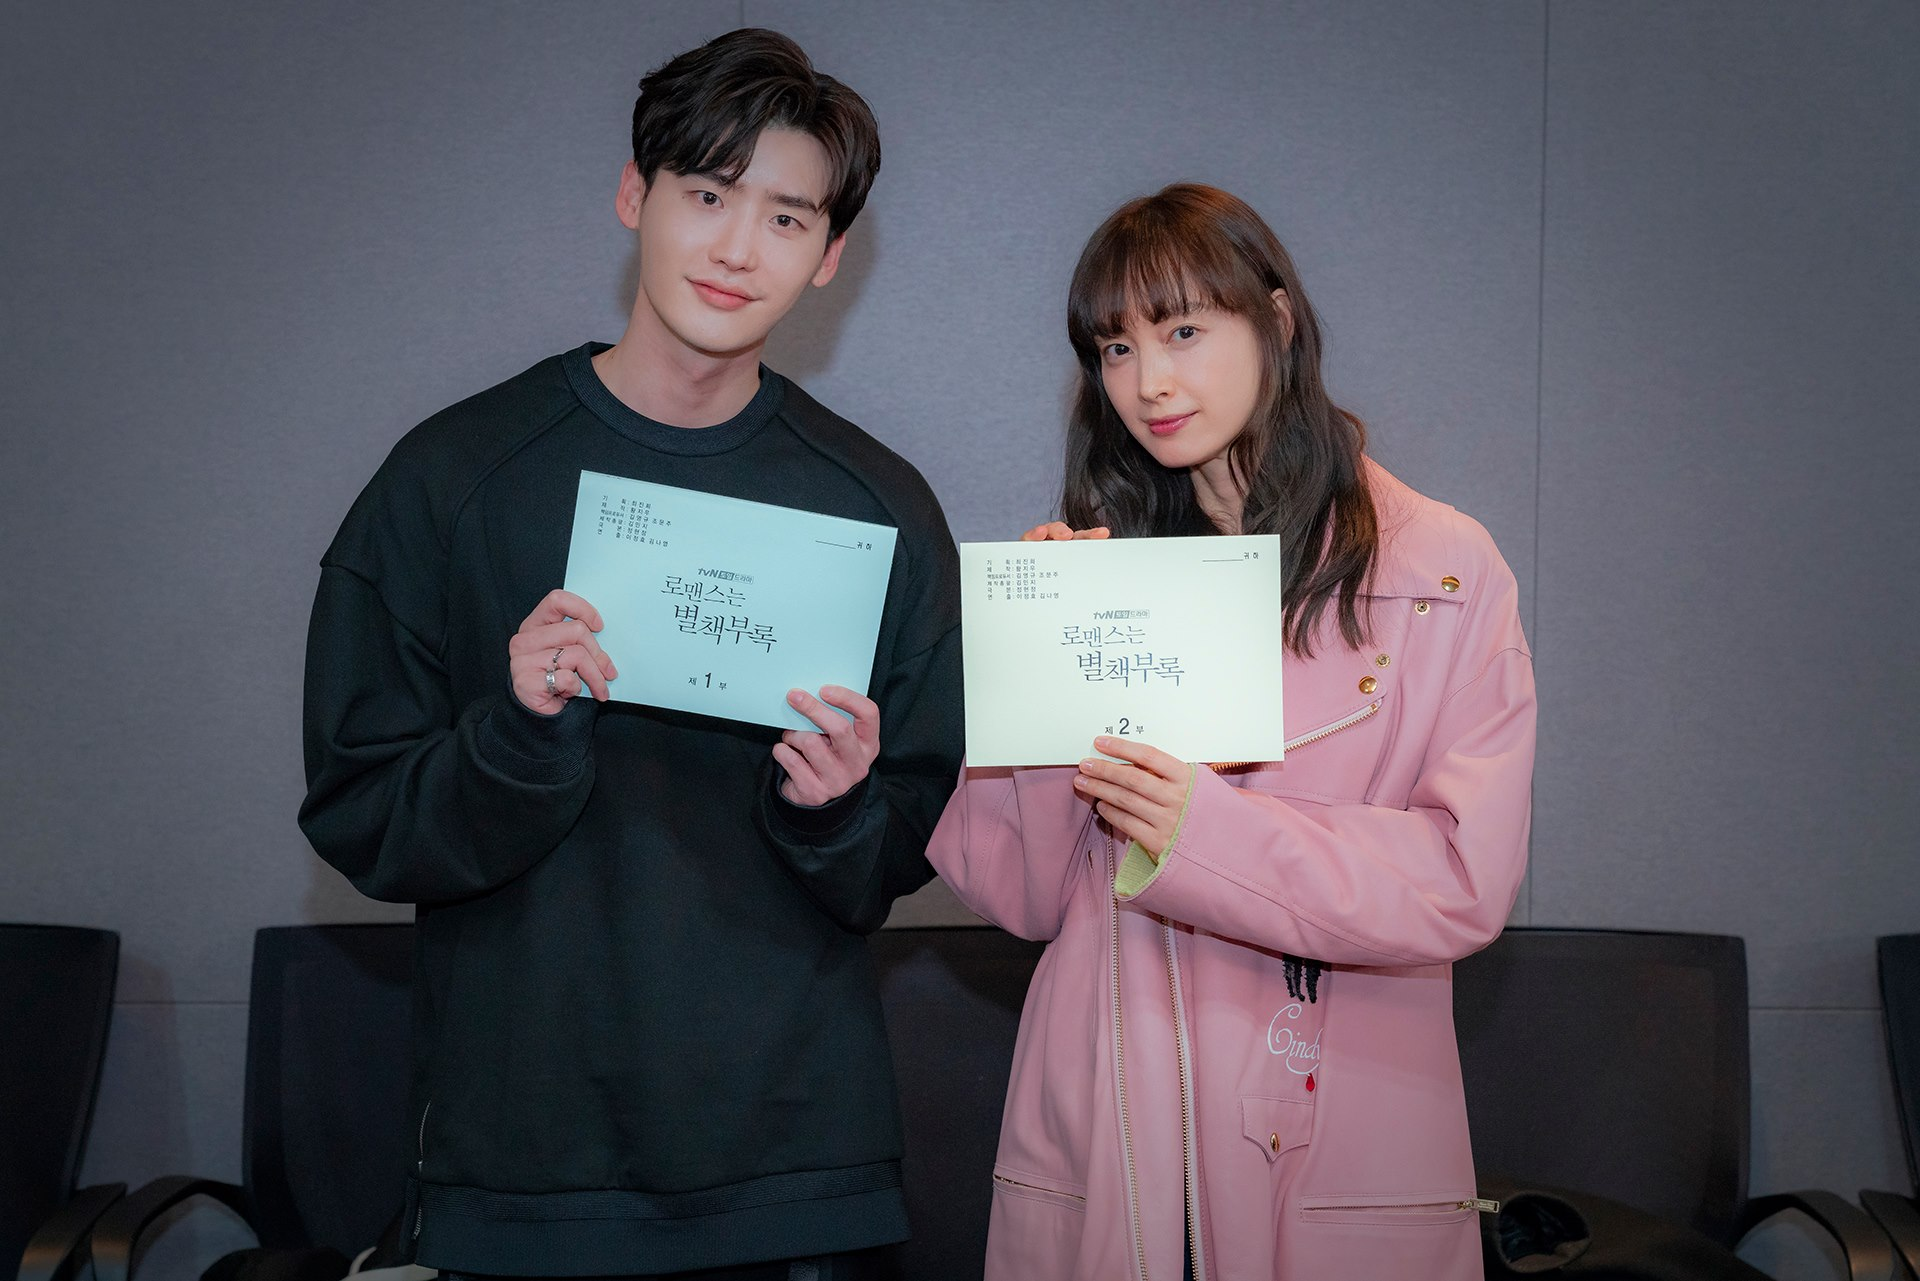 Romance Is A Supplement drama, Romance Is A Supplement cast, Romance Is A Supplement summary, Lee JongSuk Lee NaYoung, Lee JongSuk, Lee JongSuk drama, Lee JongSuk 2019, Lee NaYoung, Lee NaYoung drama, Lee NaYoung 2019